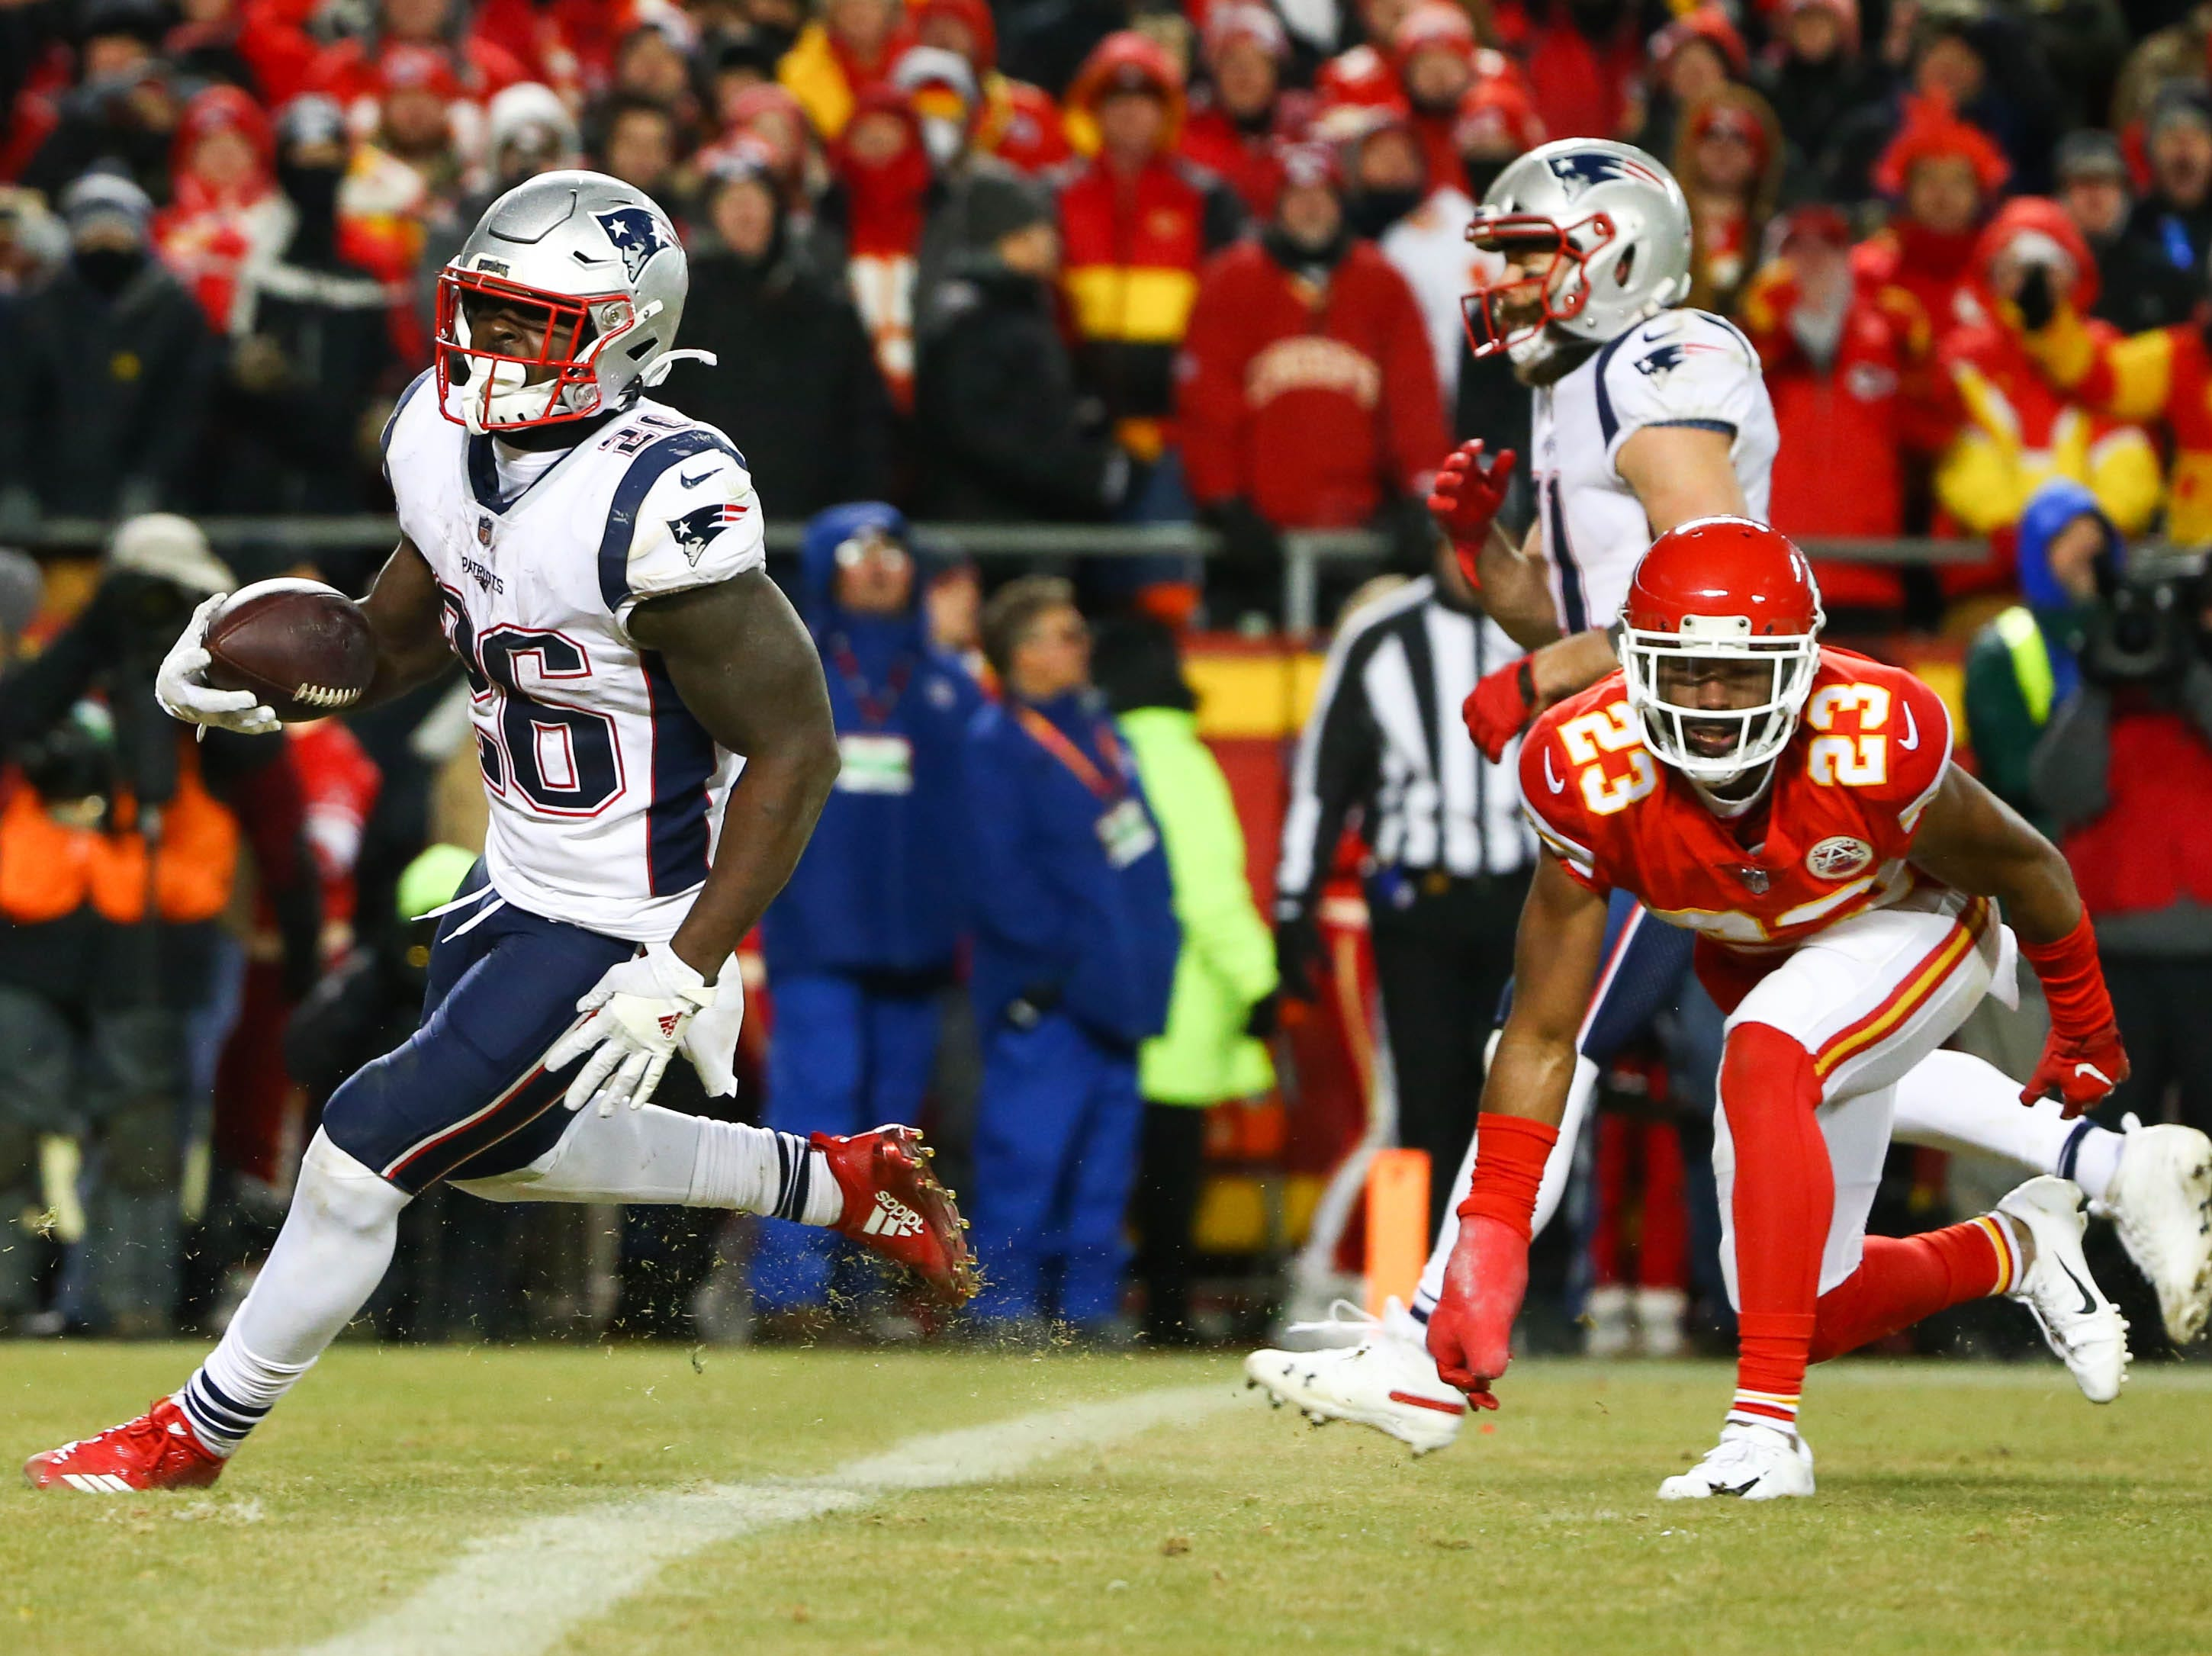 New England Patriots running back Sony Michel (26) runs the ball for a touchdown ahead of Kansas City Chiefs cornerback Kendall Fuller (23) during the second half of the AFC Championship Game at Arrowhead Stadium.